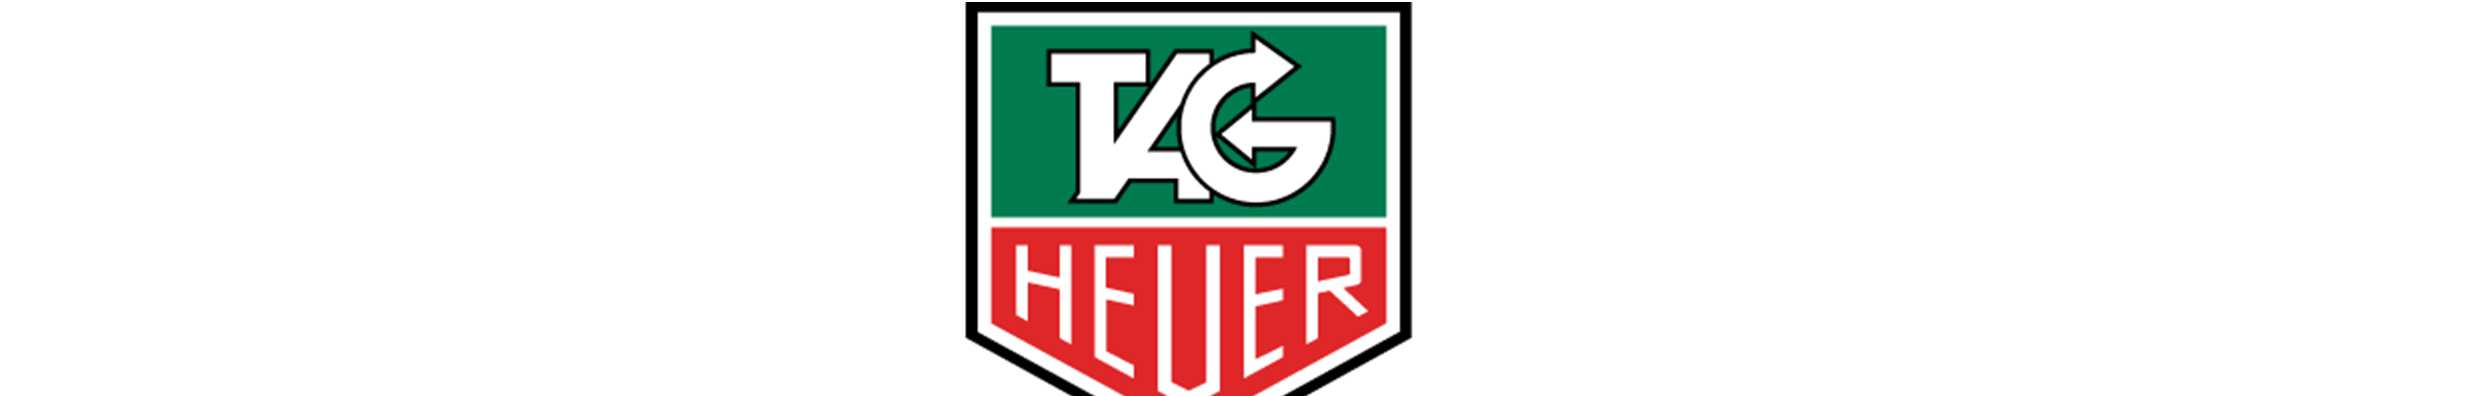 TAG Heuer PROFESSIONAL TIMING 6A Louis-Joseph Chevrolet